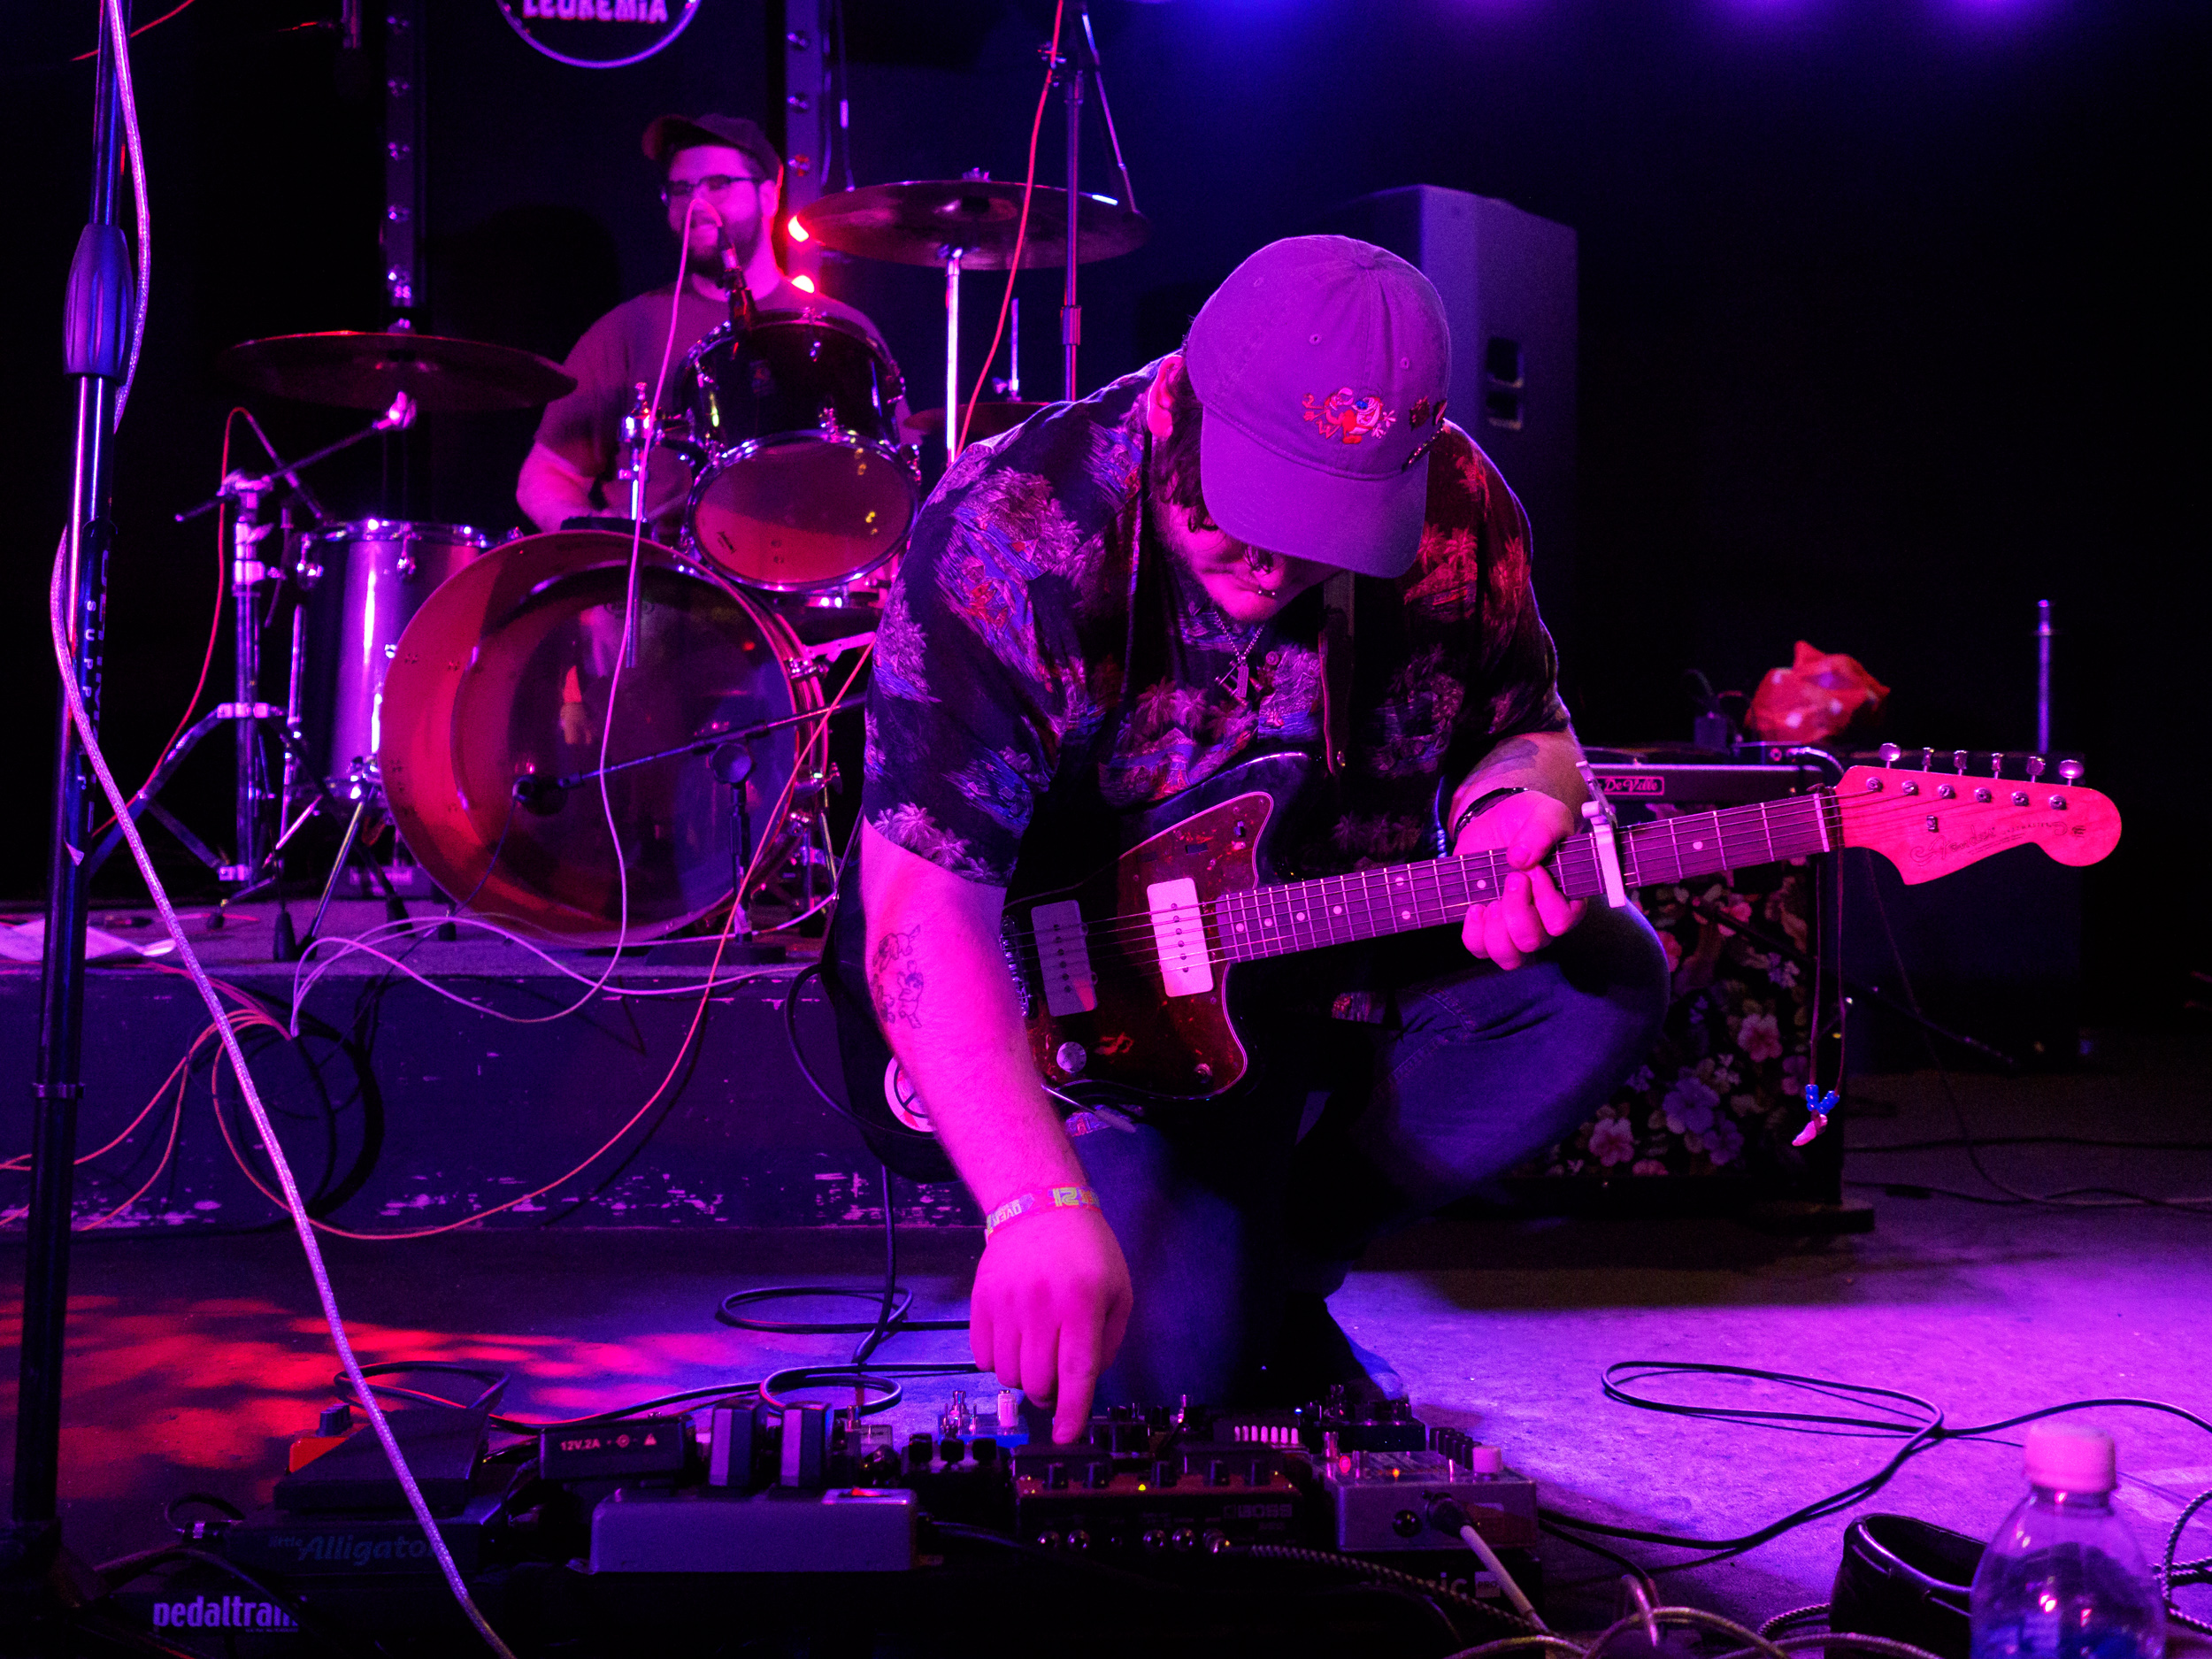 17-06-10_Concert_at_the_Foundry_6100323.JPG